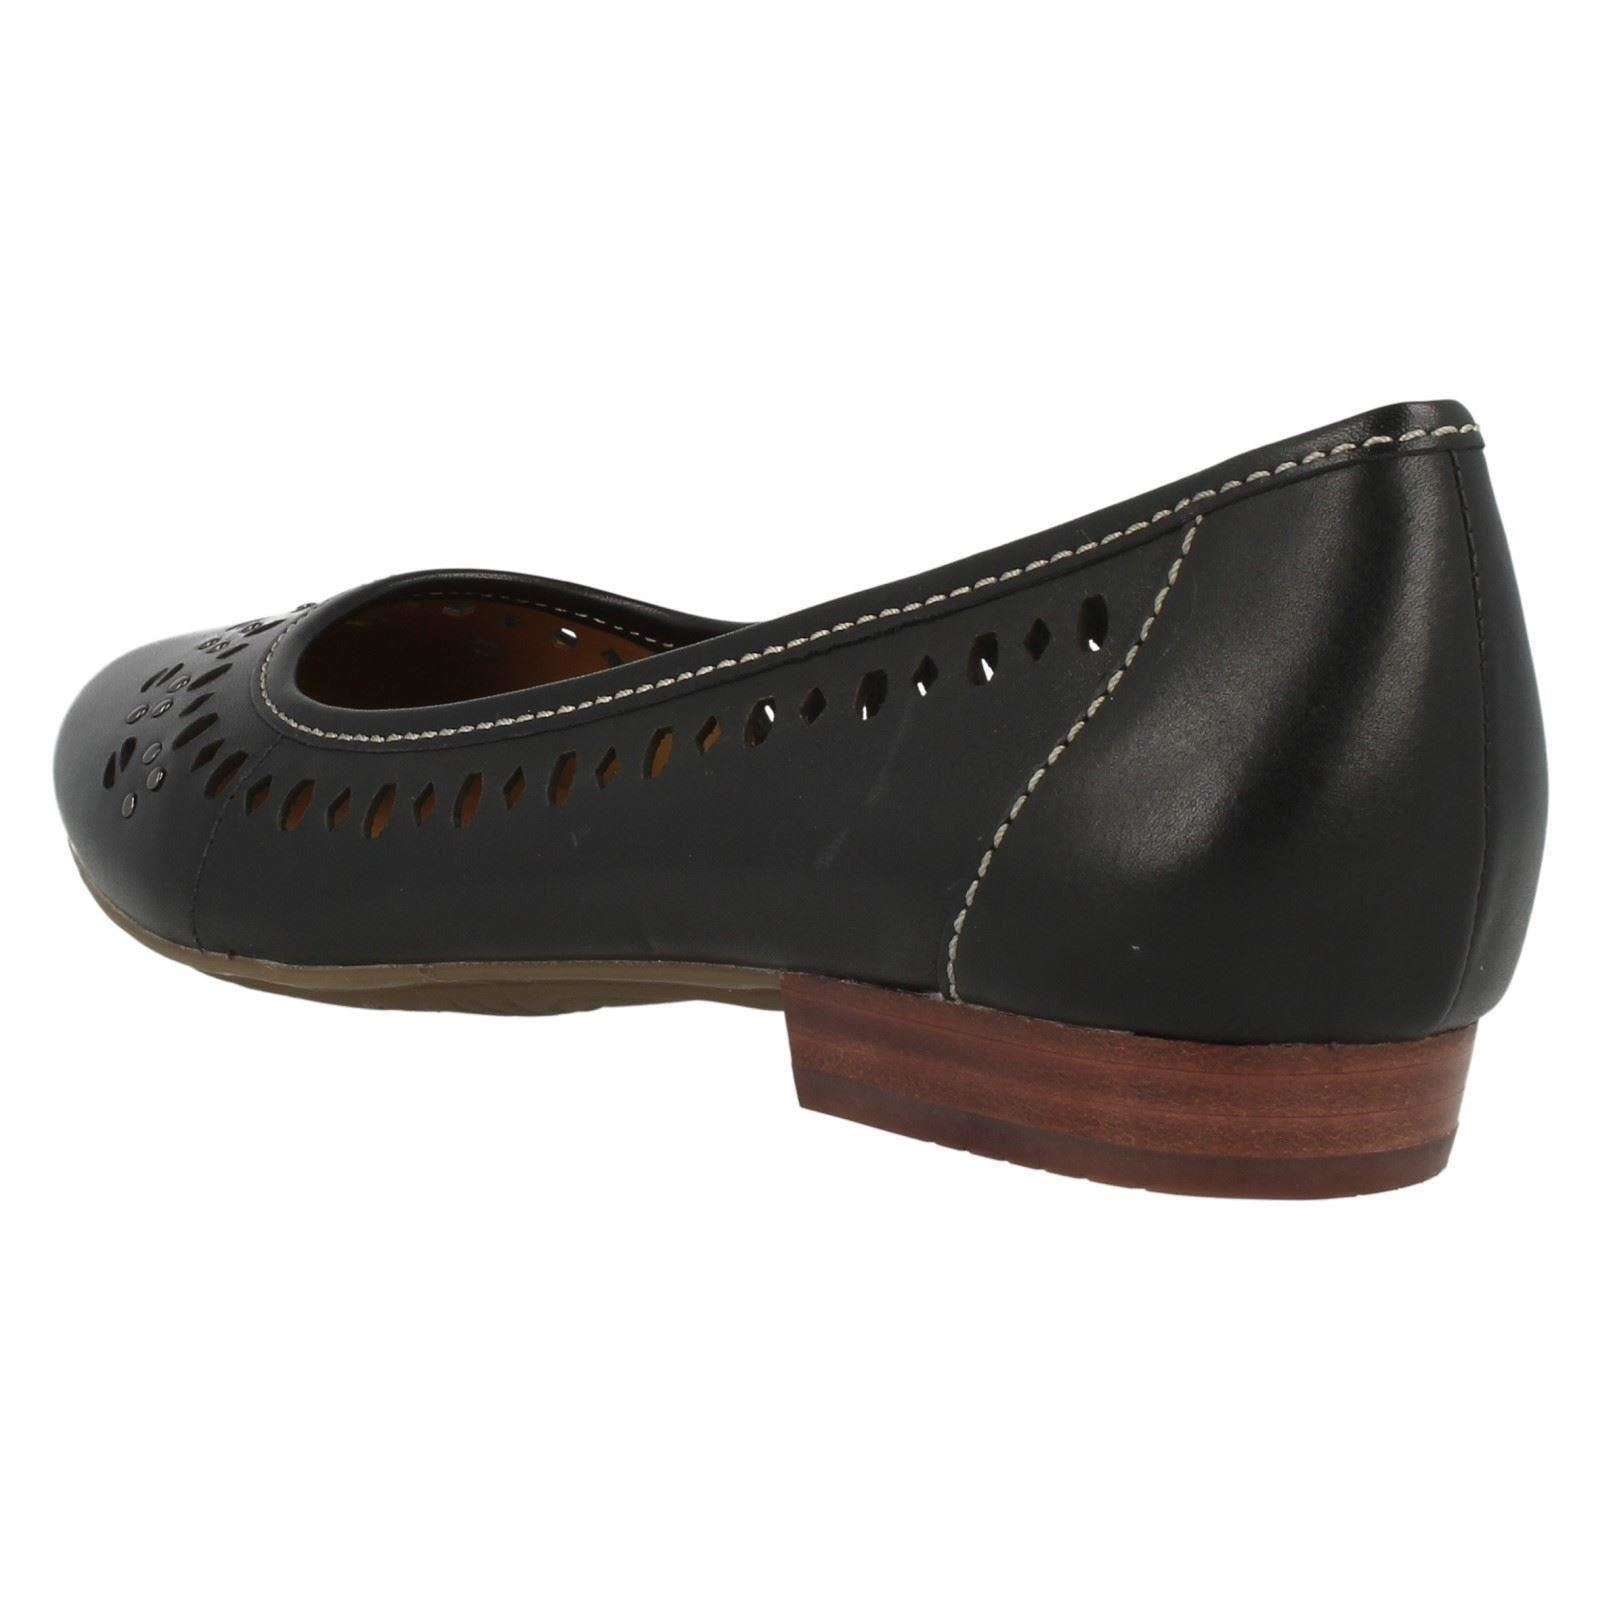 Find great deals on eBay for ballet style shoes. Shop with confidence.